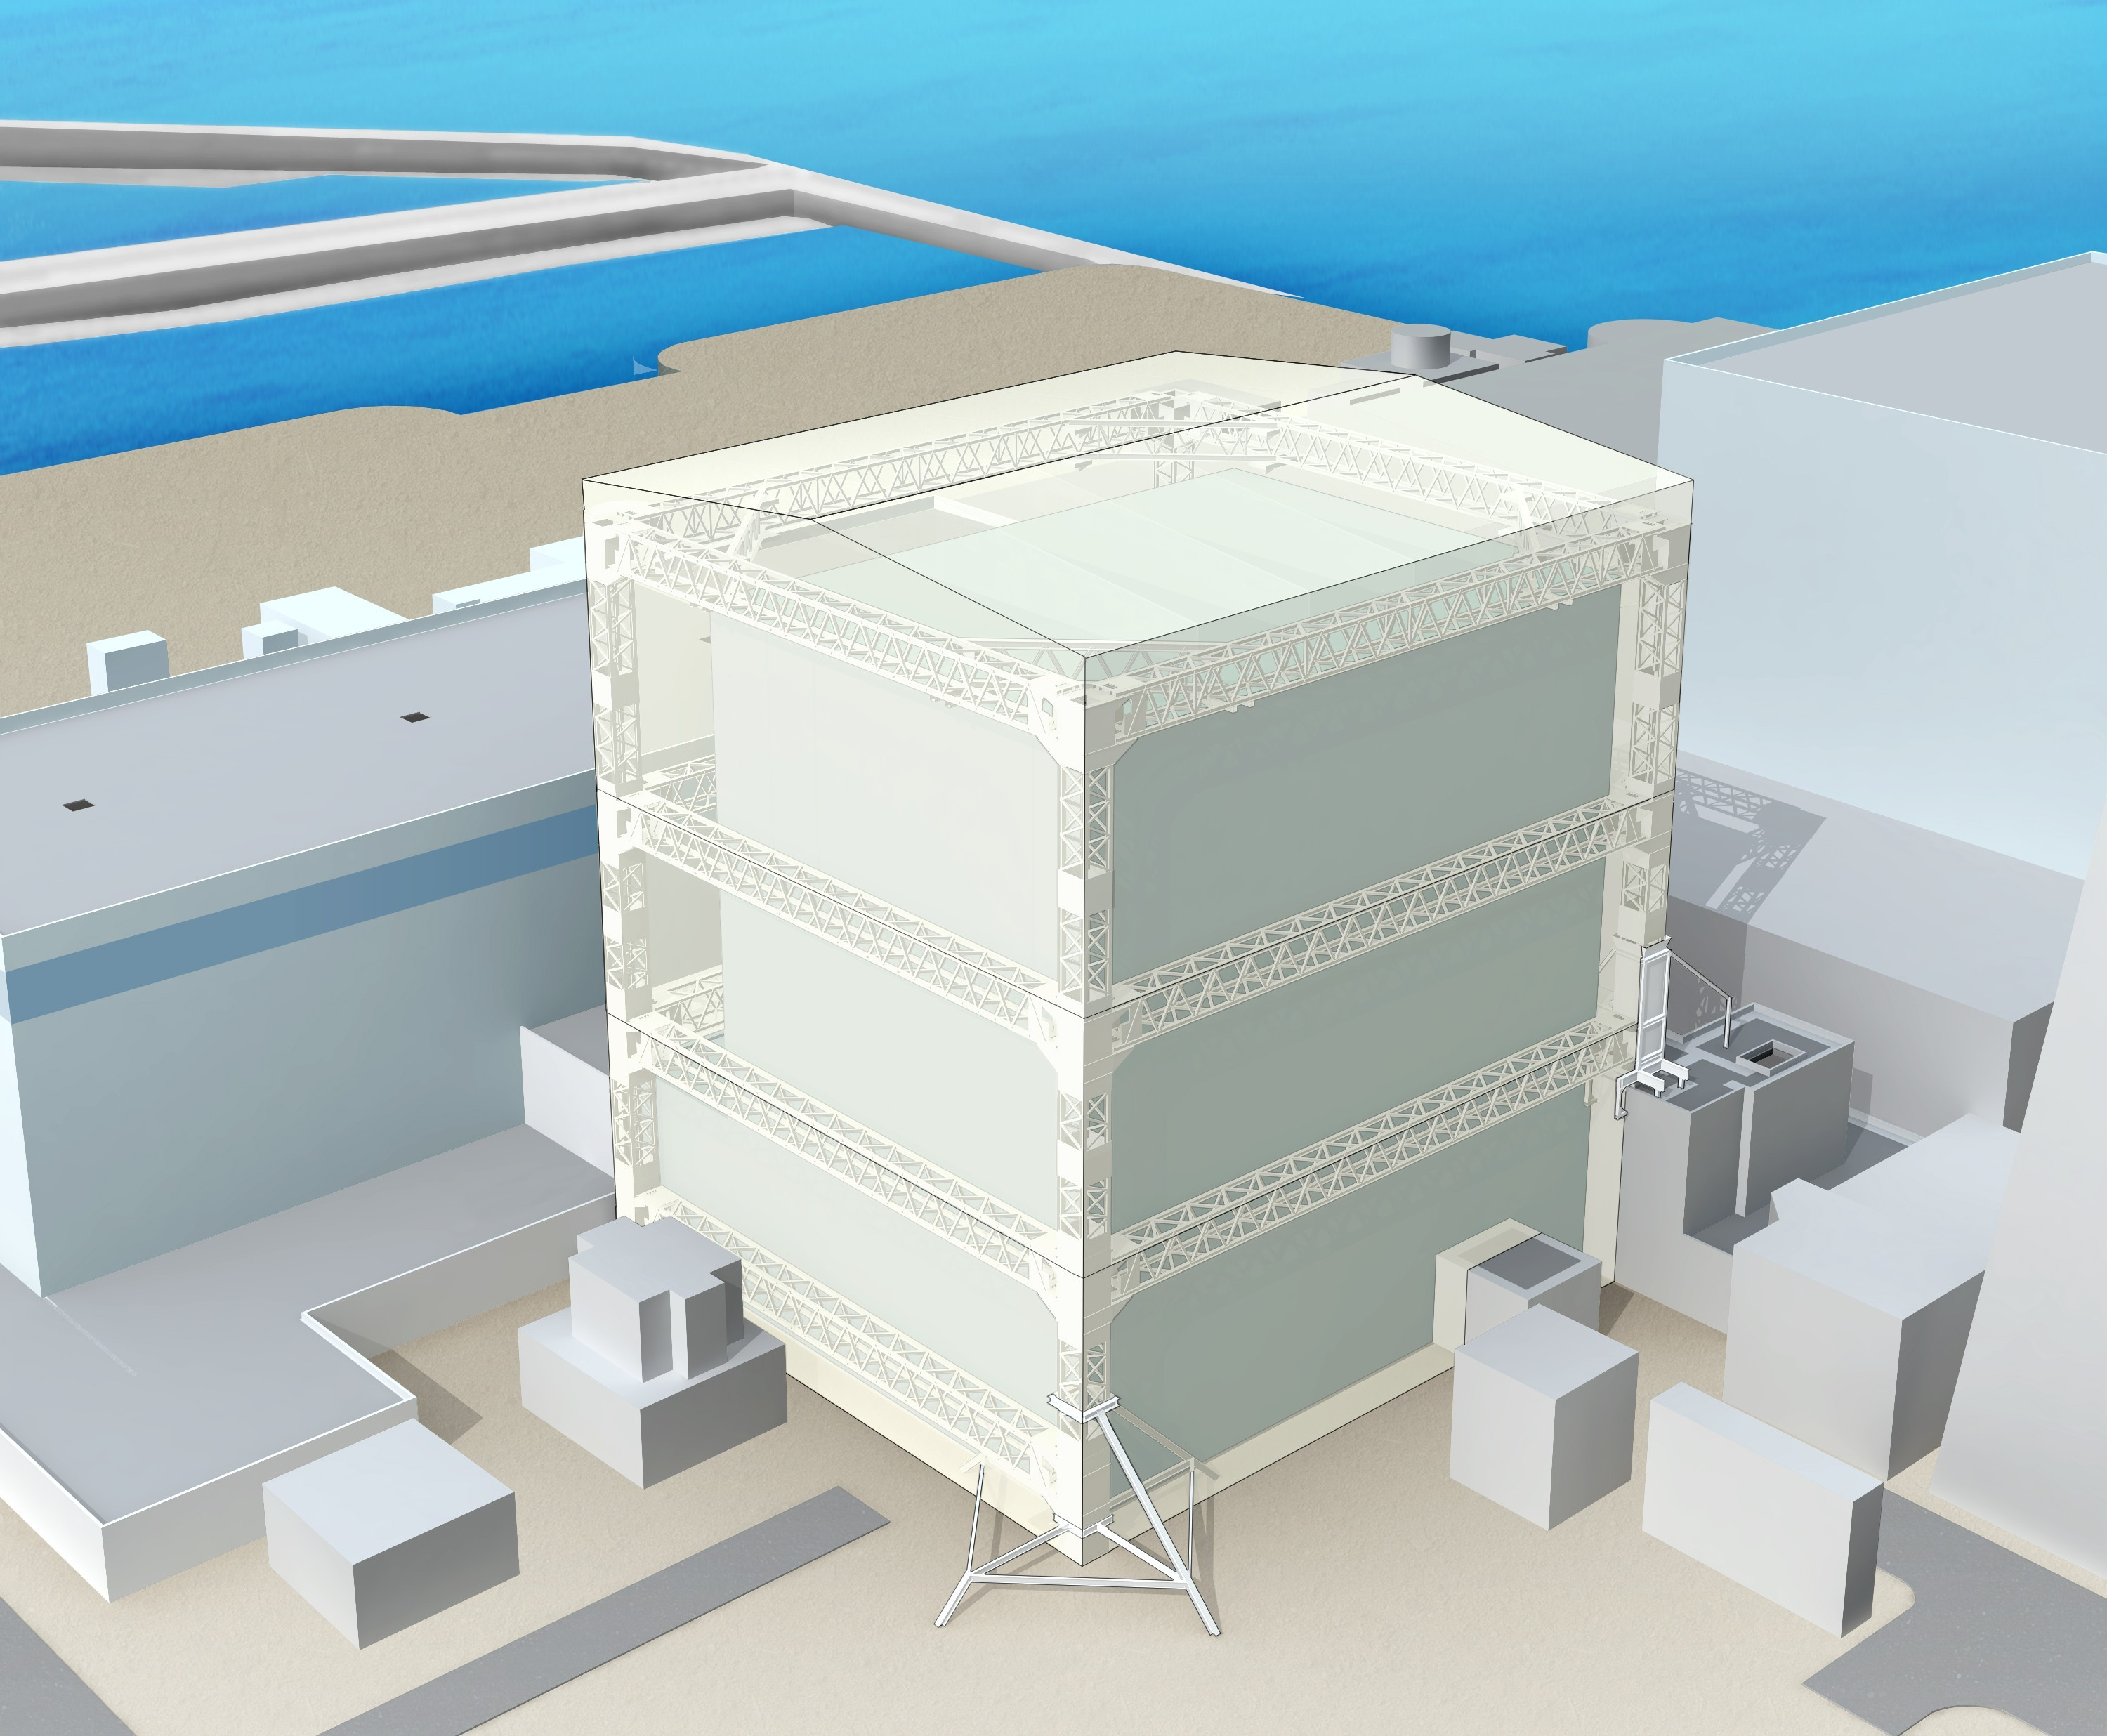 Fukushima Daiichi Nuclear Power Plant unit1reactor building covering image